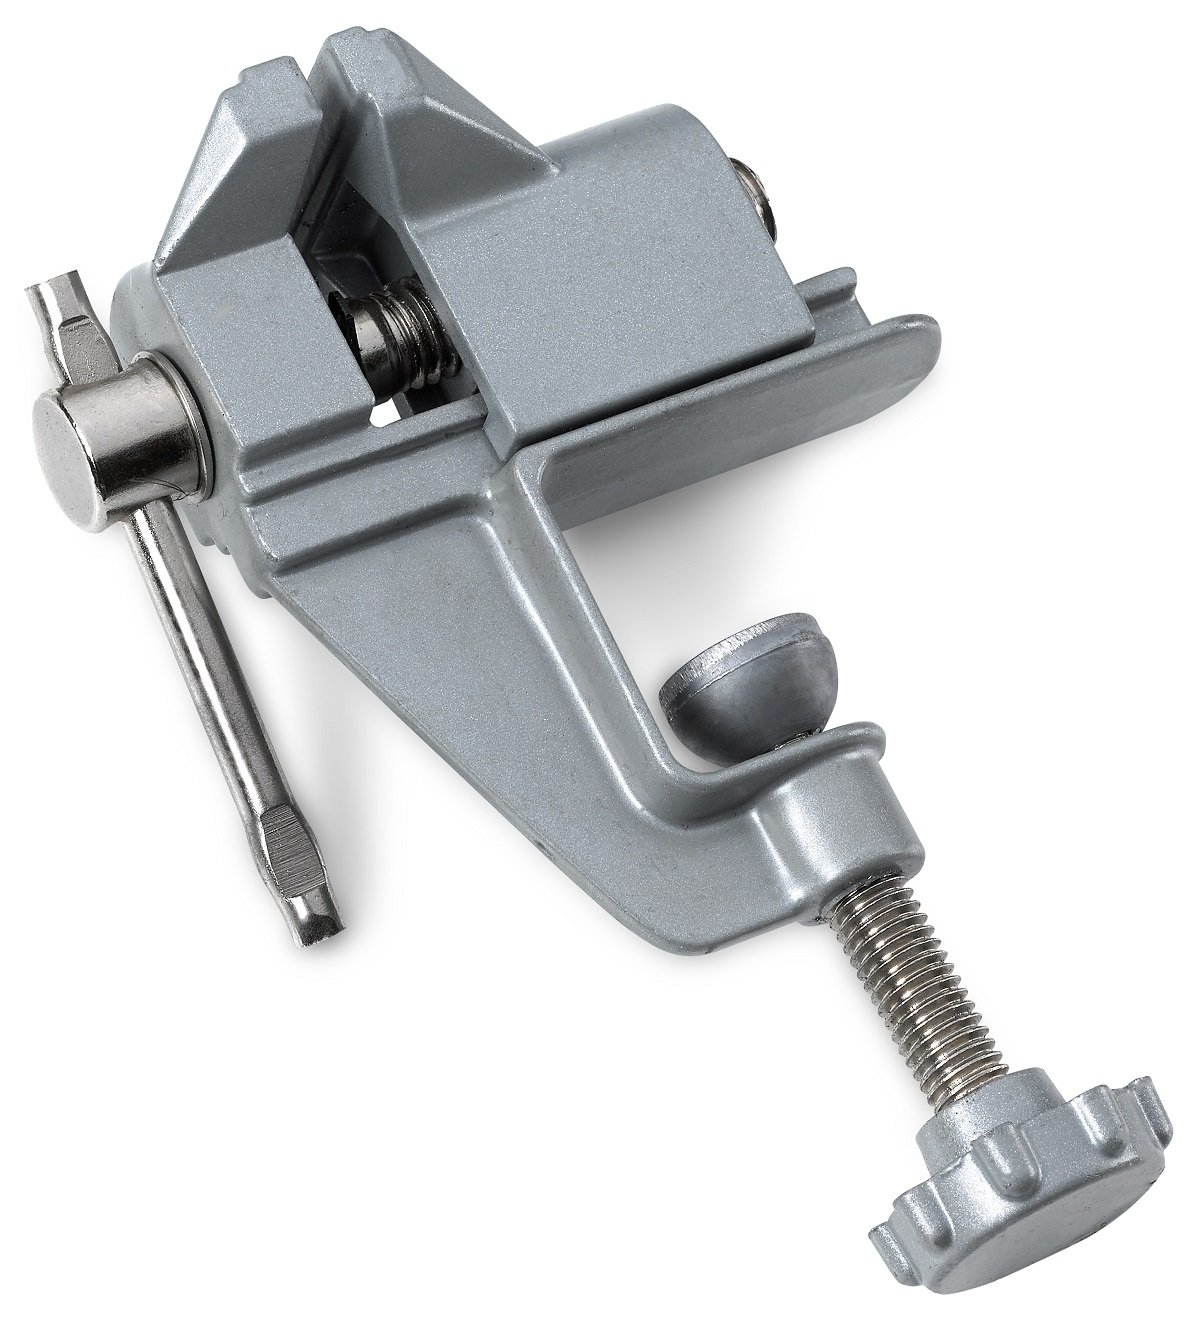 Mini Table/Bench Vise - For Small Work, Crafts, Arts, Detailing, Woodworking, Workbench, Soldering, Garage, Hobbies, Finishing, Modeling, Tables, Flat, Angular, and Round Objects - By Katzco Kayco Usa